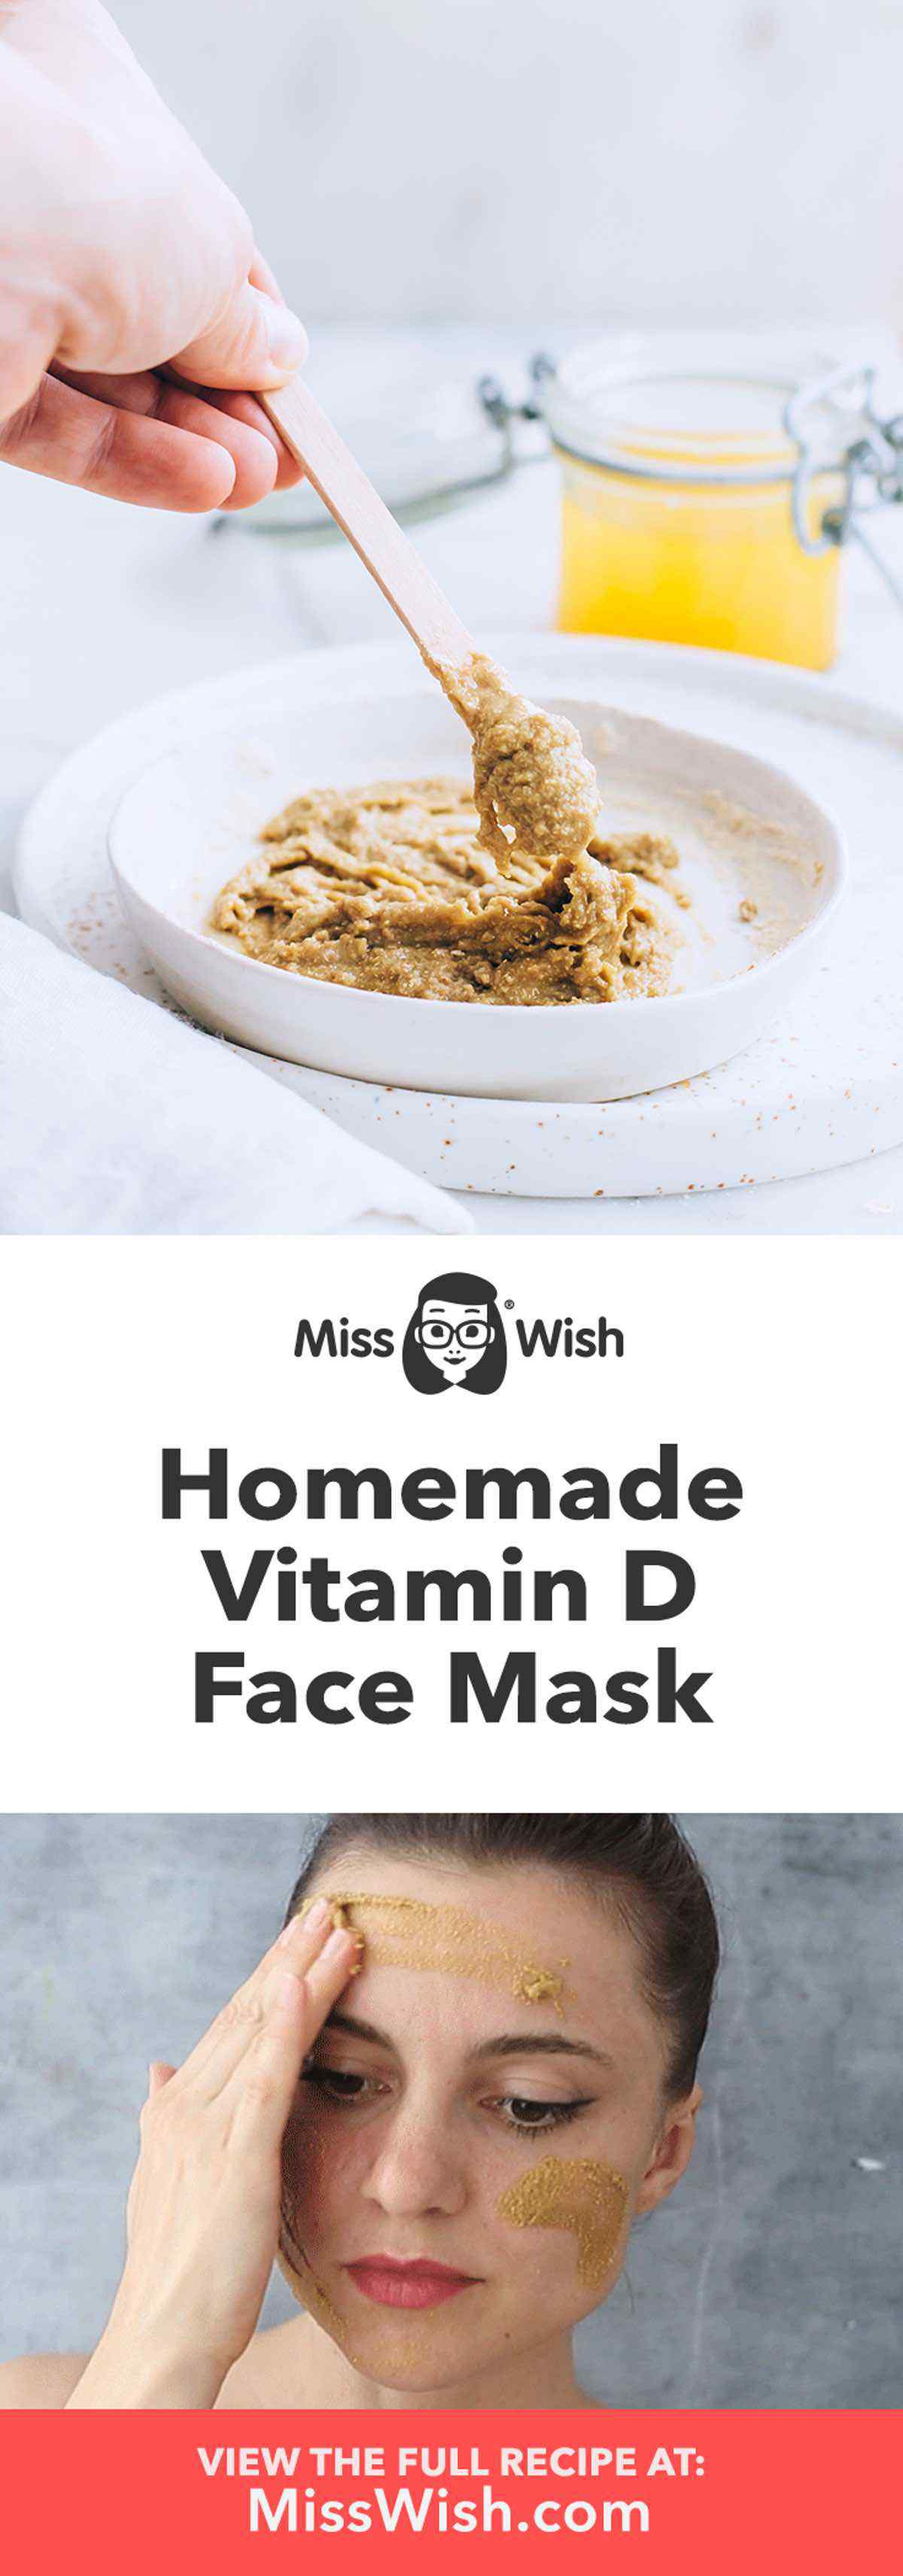 Homemade Vitamin D Face Mask